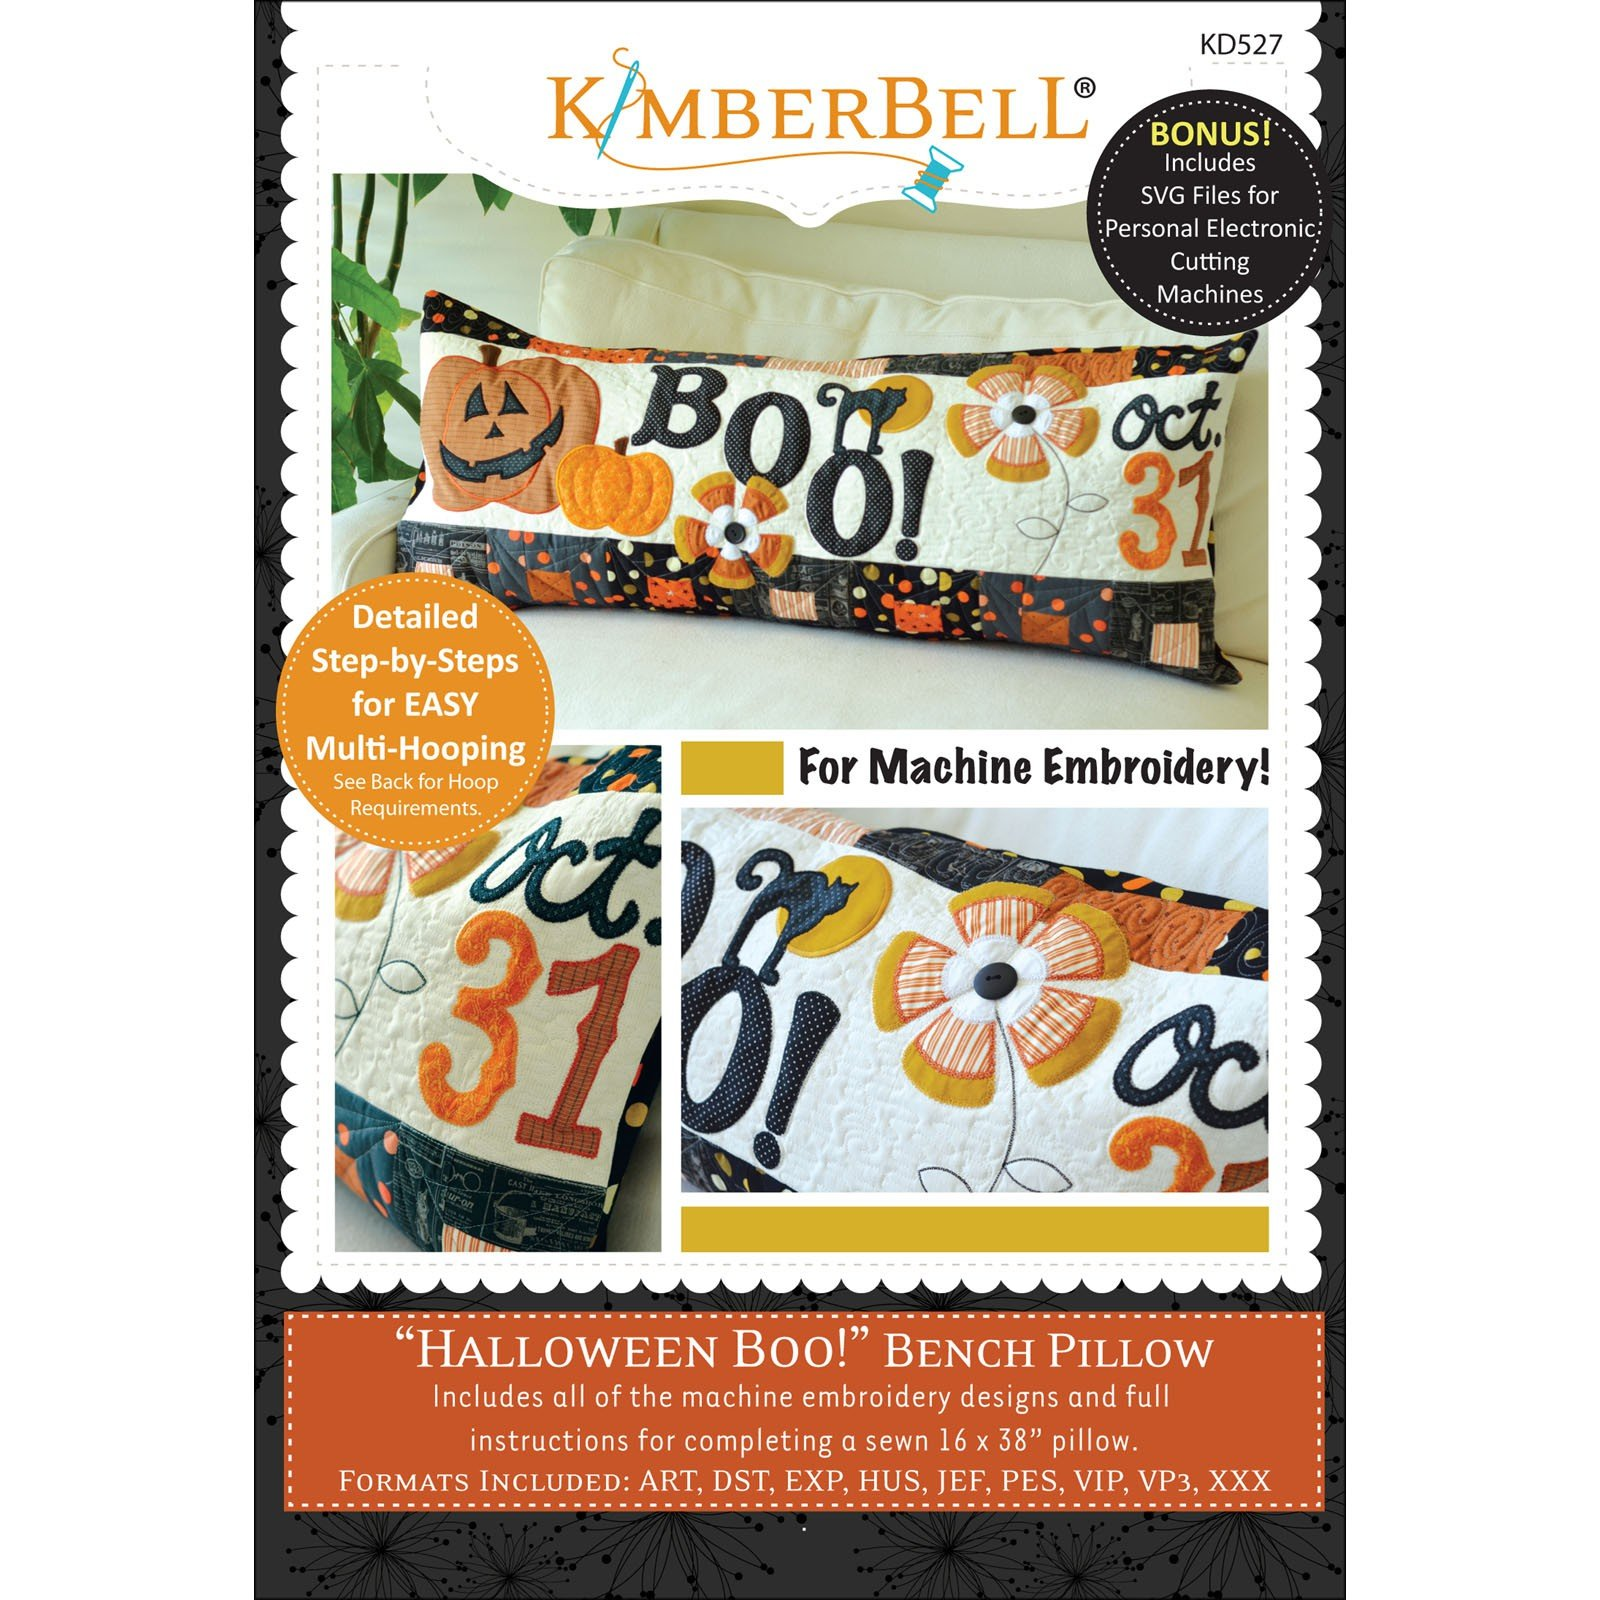 Halloween Boo! Bench Pillow (Embroidery CD) by Kimberbell